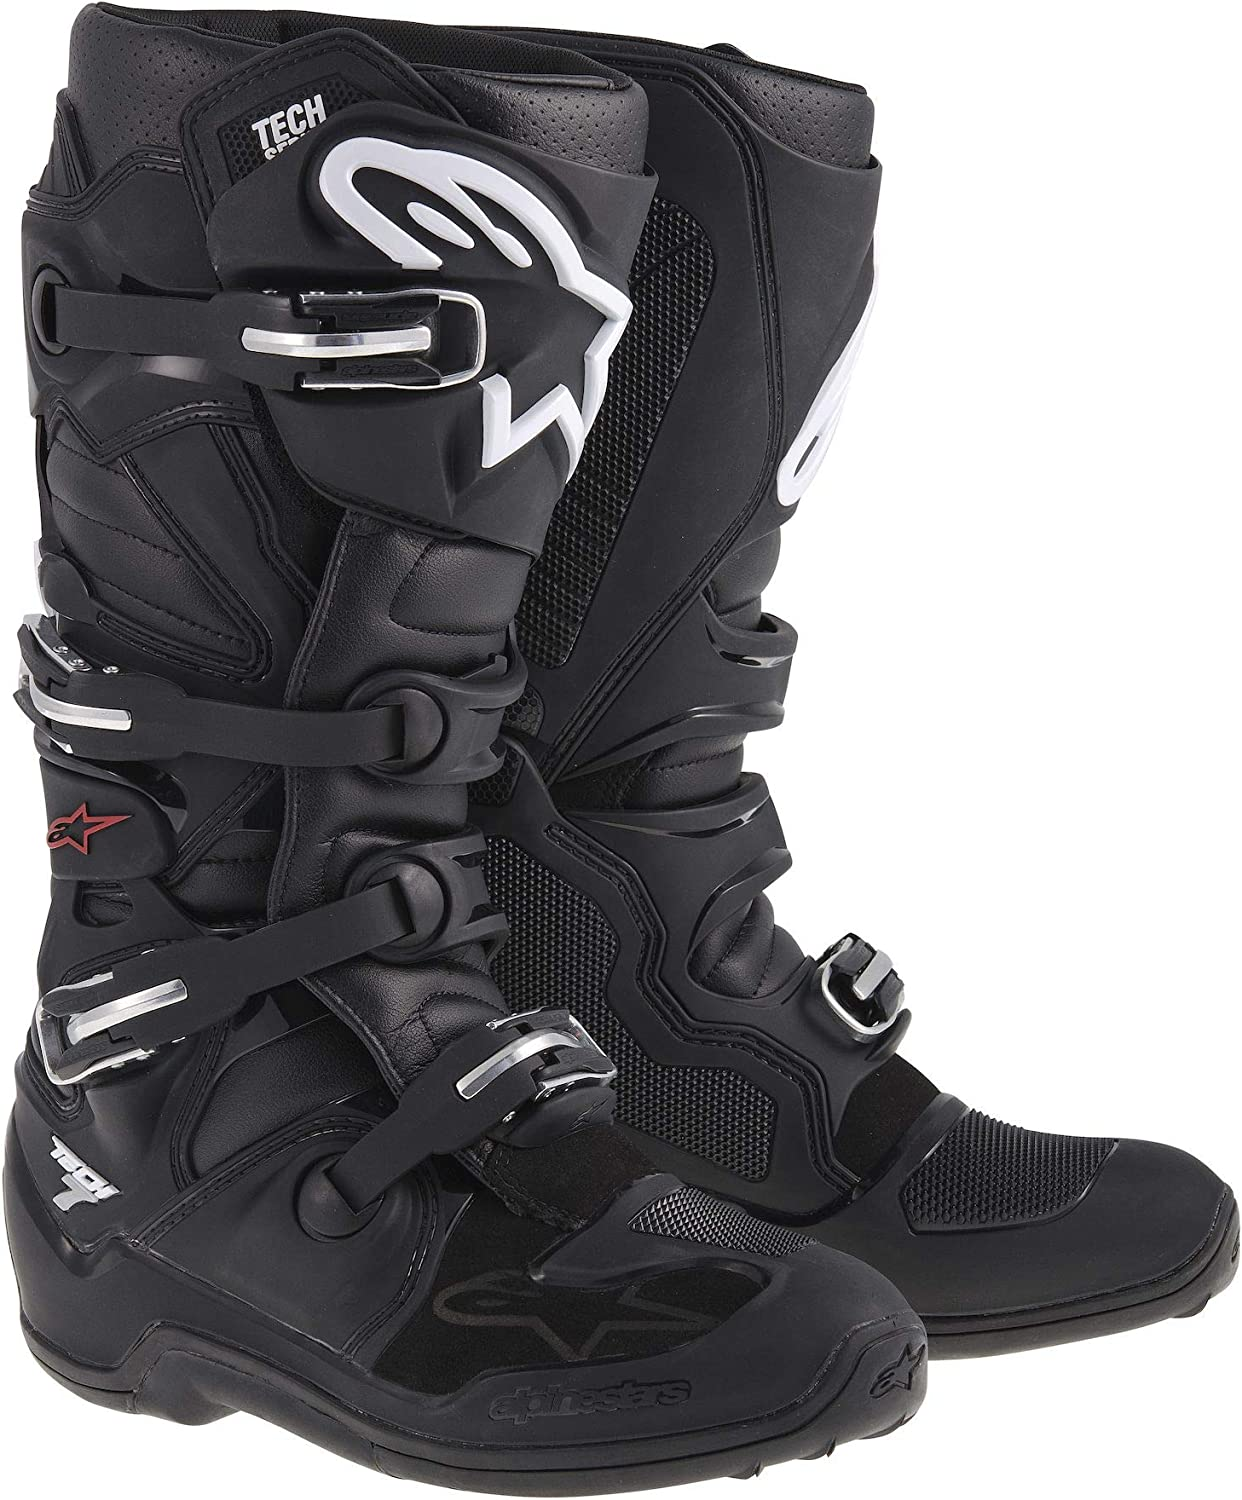 Alpinestars Tech 7 Men's Motocross Motorcycle Boots - Black/Size 11: Shoes